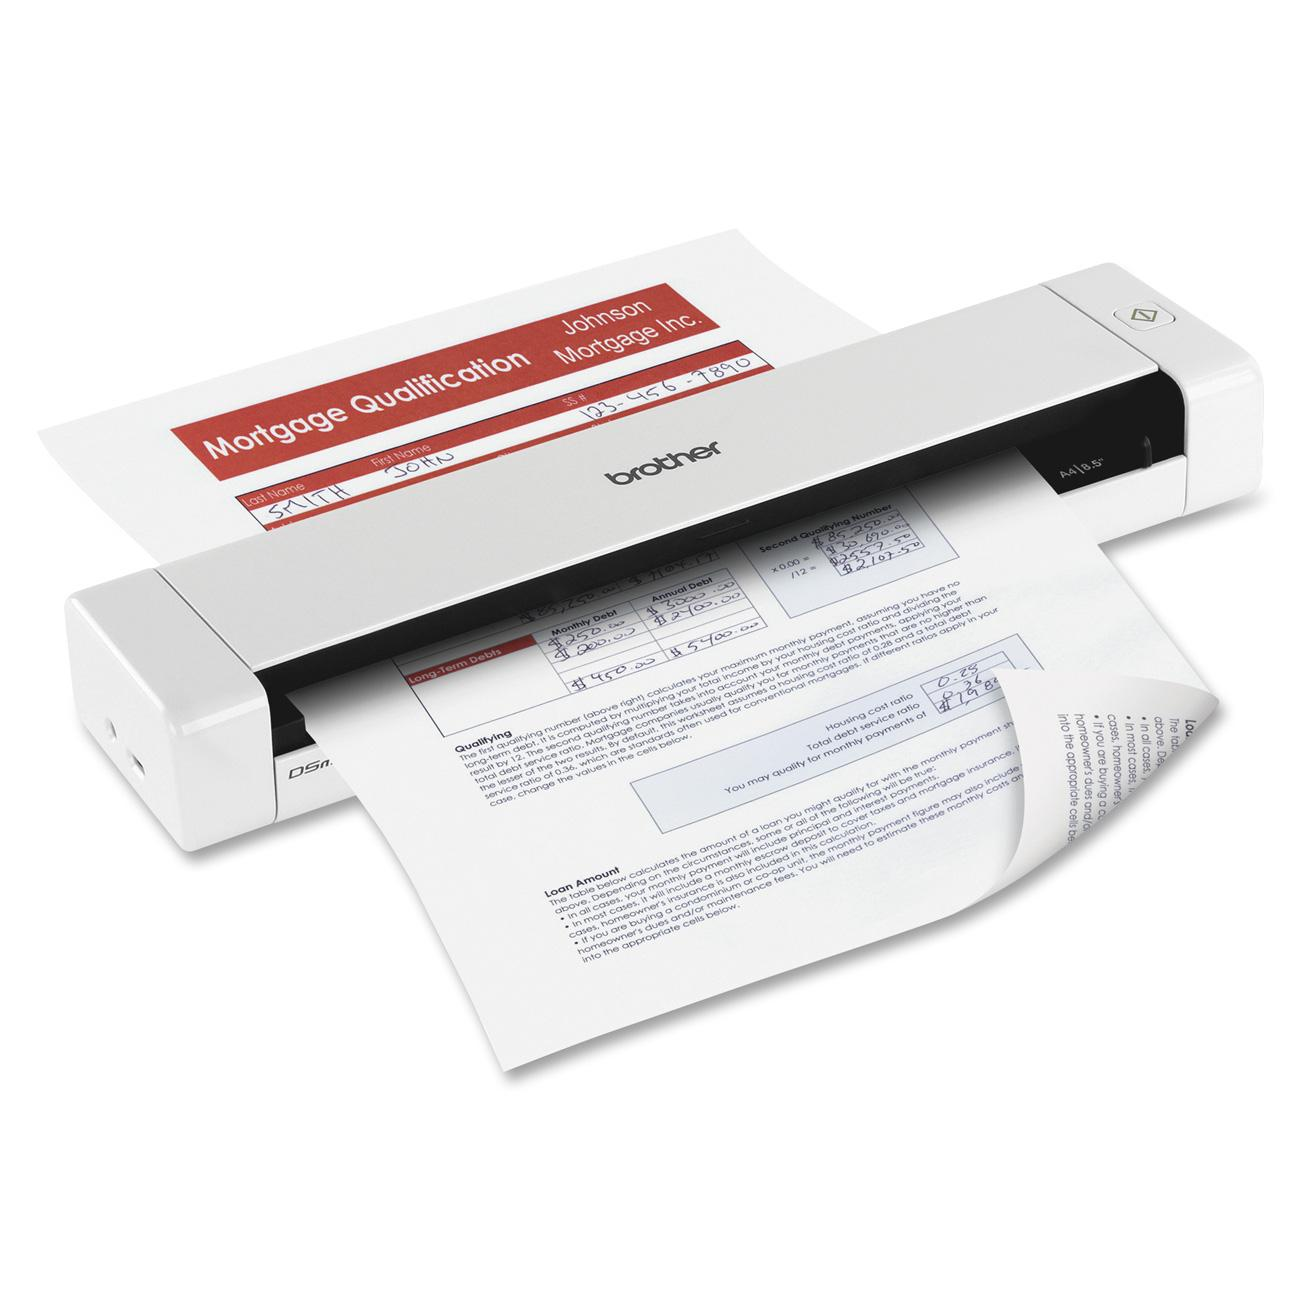 Brother DS720D Mobile Color Page Duplex Scanner